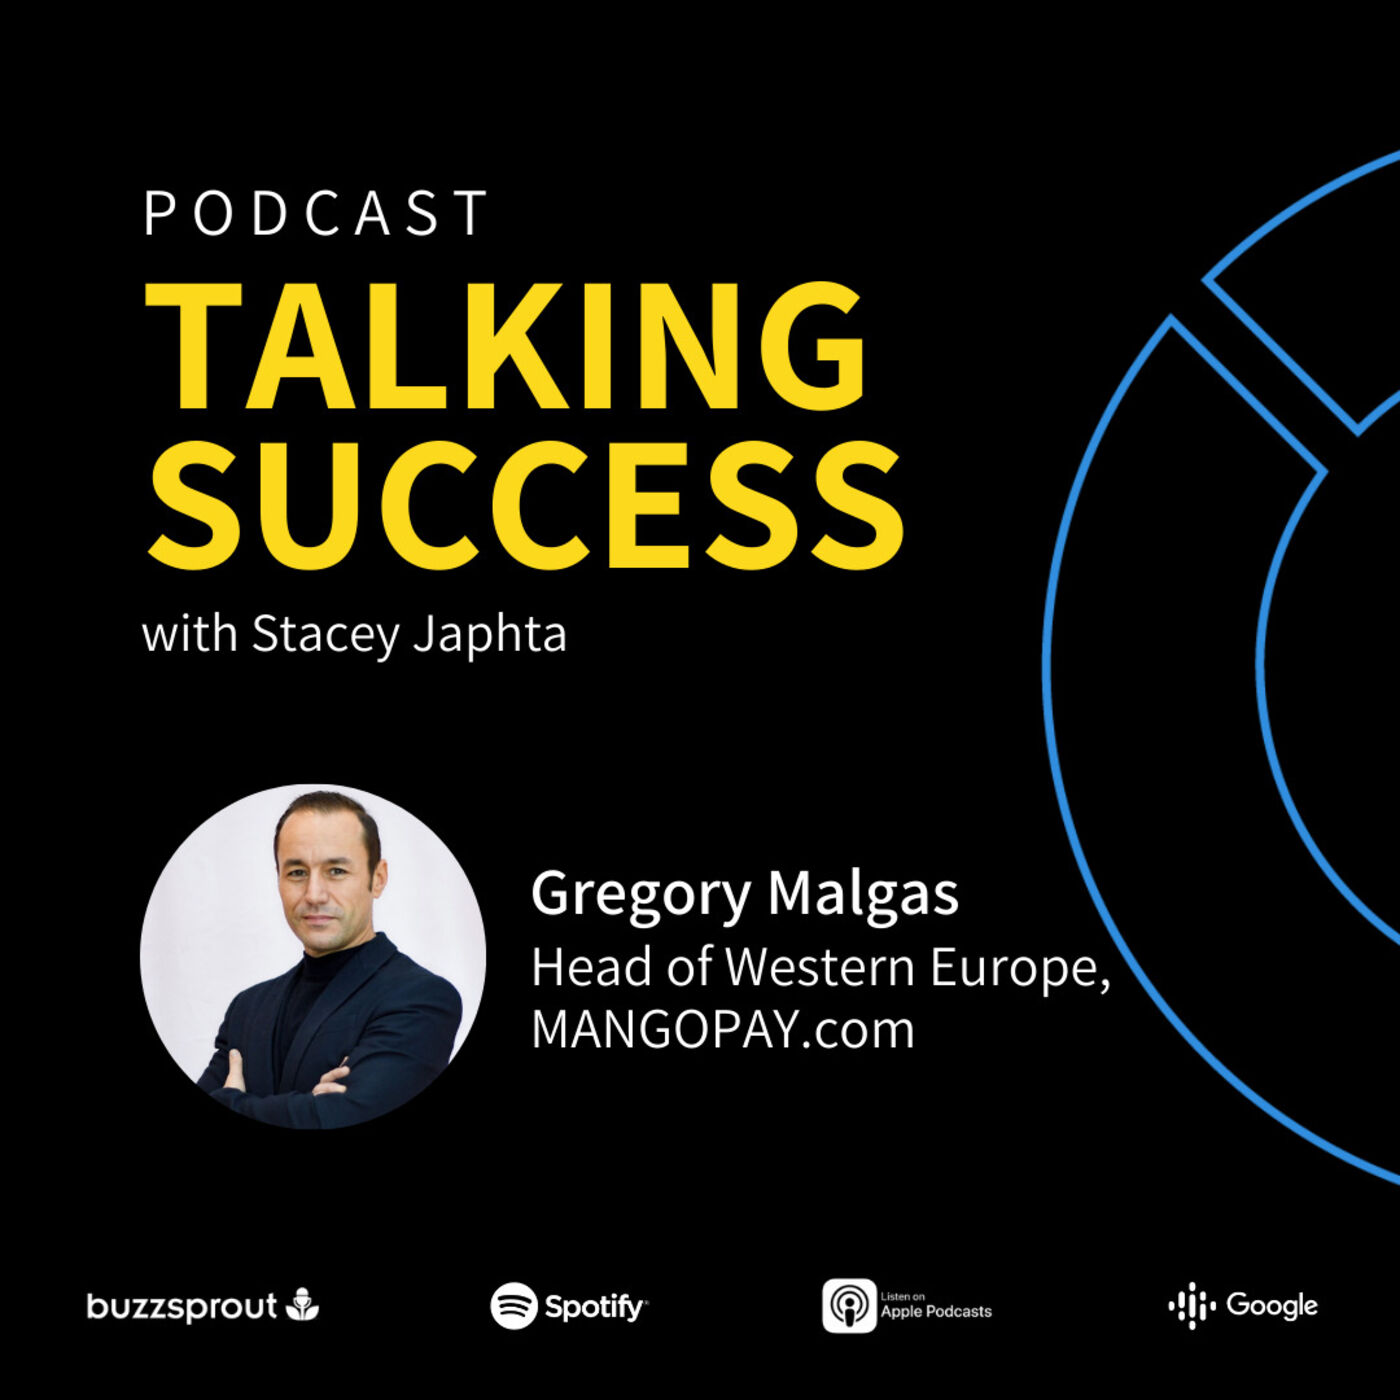 Gregory Malgras, Head of Western Europe at MANGOPAY.com - All things FinTech, globalizing a local product, & calculating risk